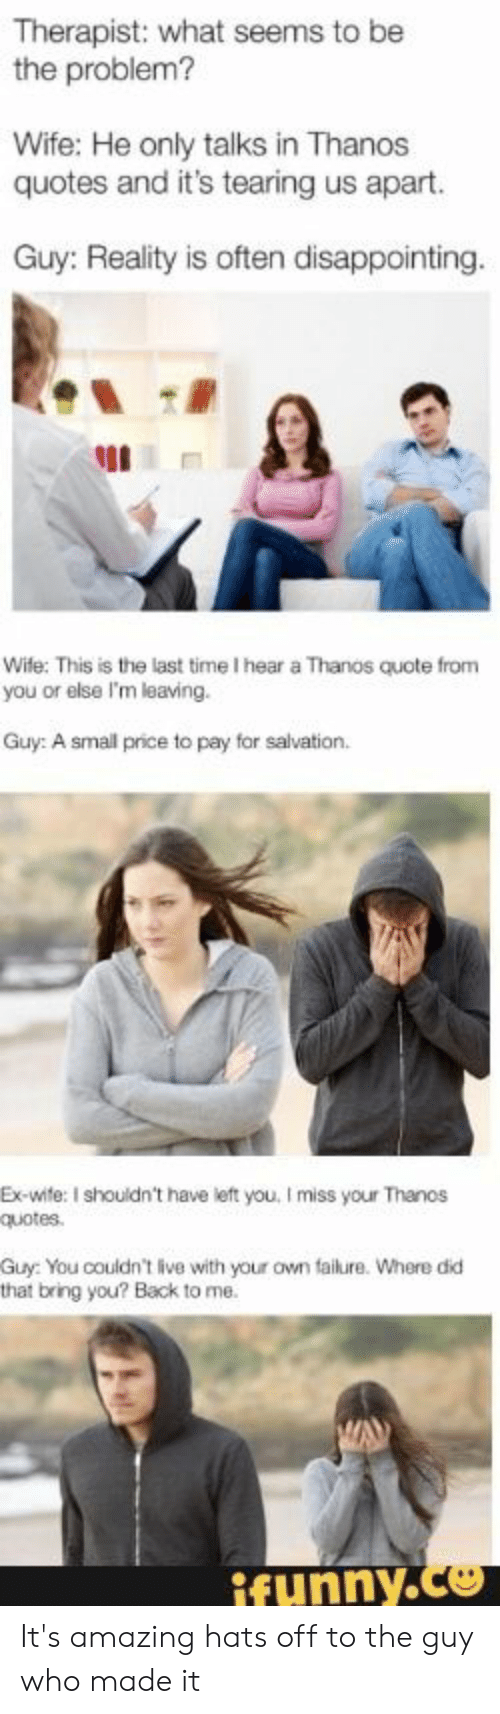 hats off: Therapist: what seems to be  the problem?  Wife: He only talks in Thanos  quotes and it's tearing us apart.  Guy: Reality is often disappointing.  Wife: This is the last time I hear a Thanos quote from  you or else I'm leaving.  Guy: A small price to pay for salvation.  Ex-wite: I shouldn't have left you, I miss your Thanos  quotes  Guy: You couldn't live with your own failure. Where did  that bring you? Back to me.  ifunny.co It's amazing hats off to the guy who made it